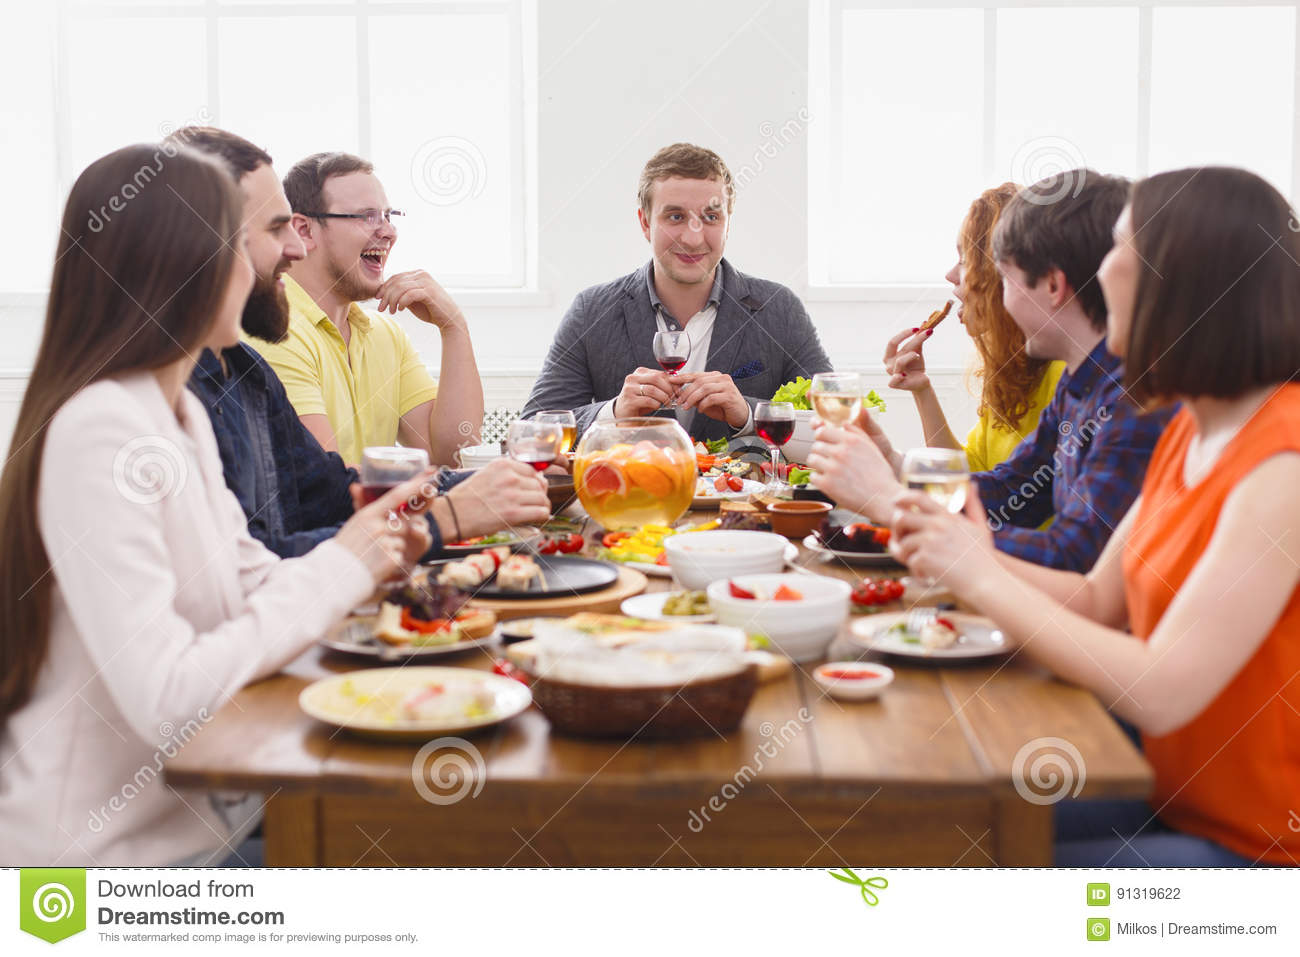 Group Of Happy People At Festive Table Dinner Party Stock  : group happy people festive table dinner party friends meeting talking eating healthy meals cafe restaurant young company 91319622 from www.dreamstime.com size 1300 x 957 jpeg 130kB